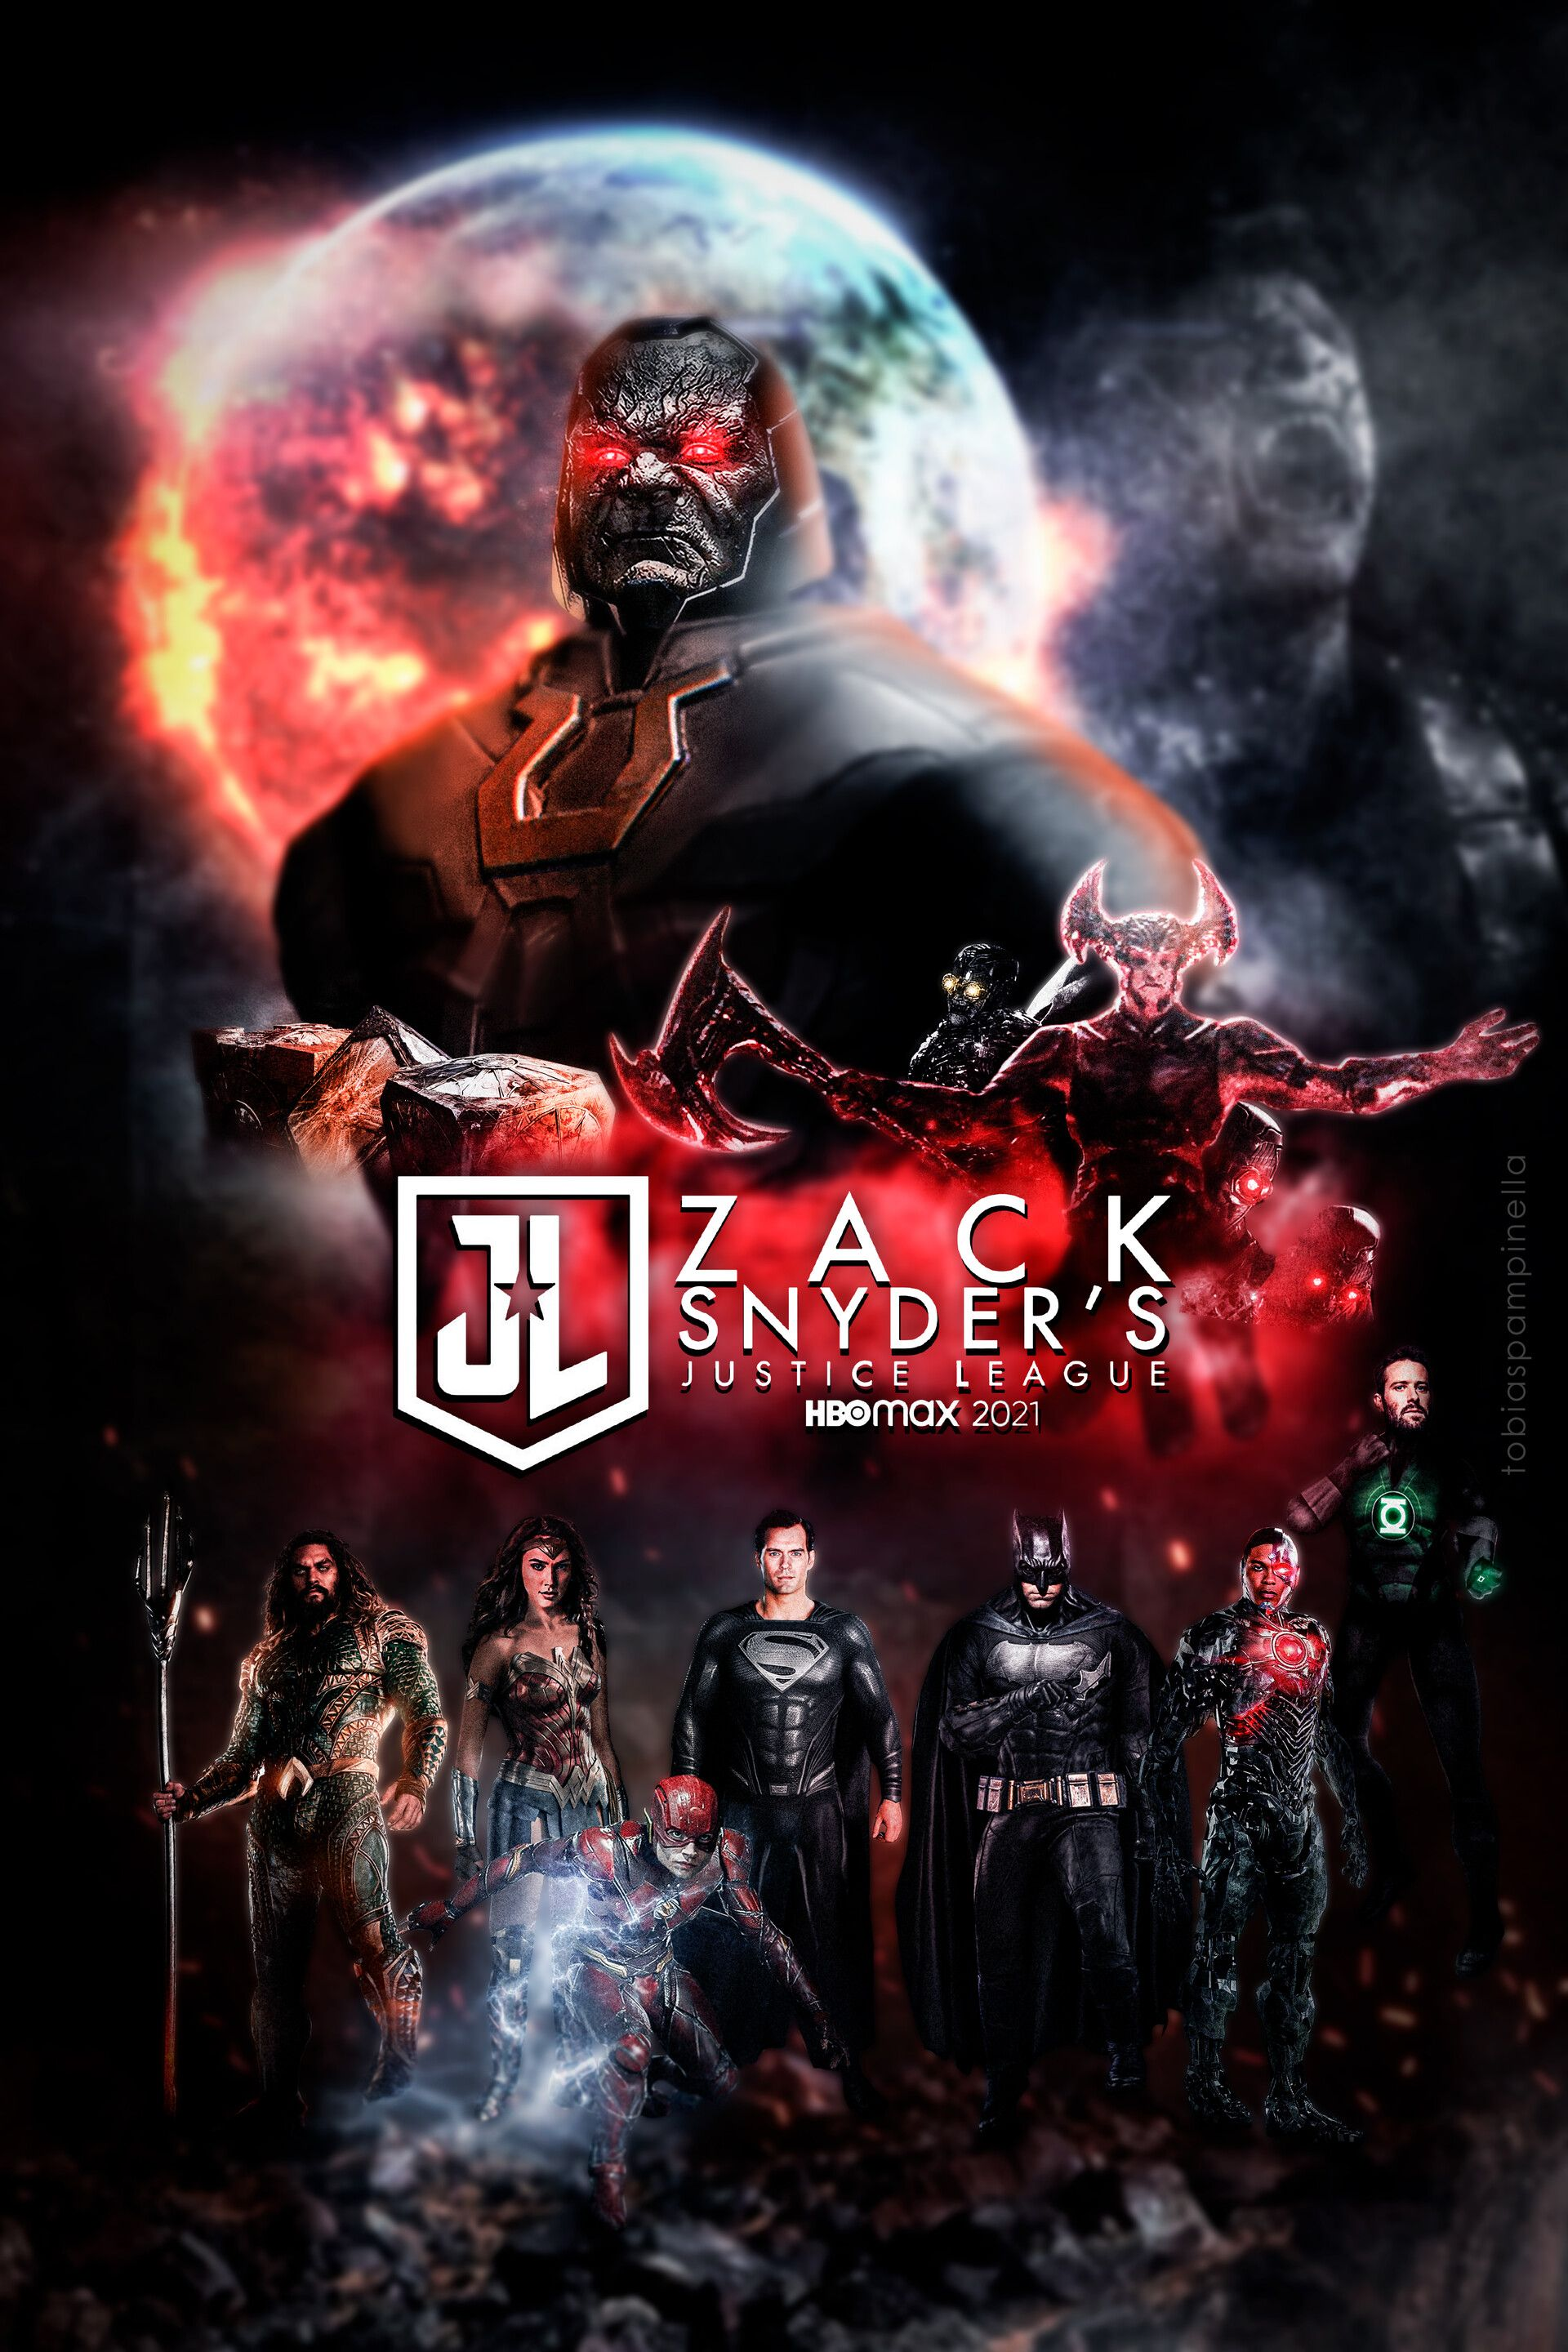 Zack Snyder S Justice League Hbo Max 2021 In 2021 Justice League League Dc Comics